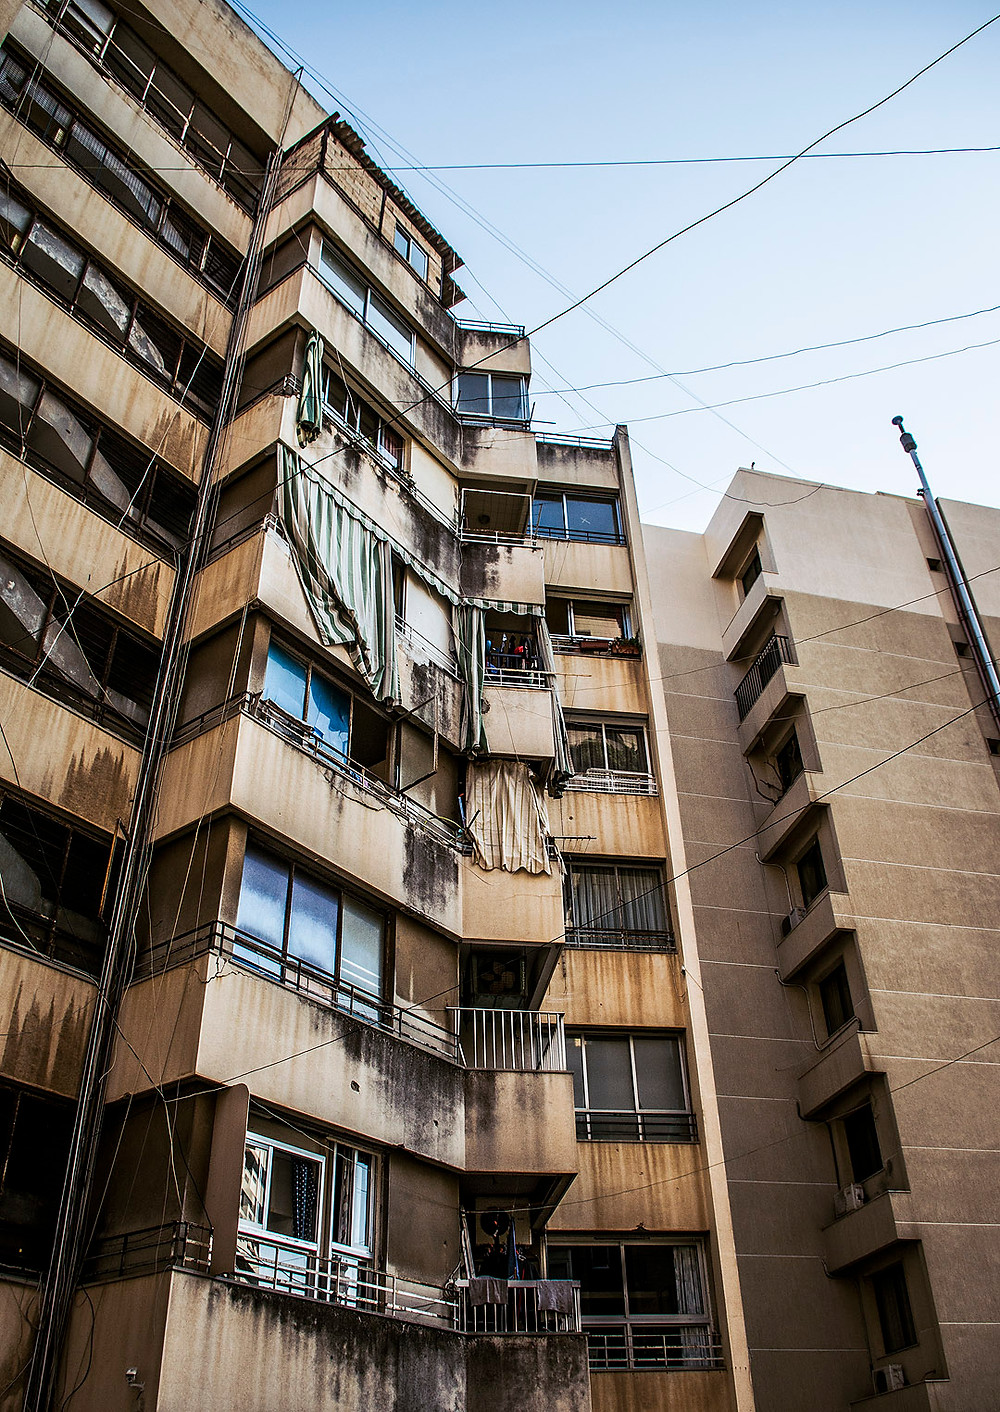 Apartment blocks in Ras Beirut, Lebanon